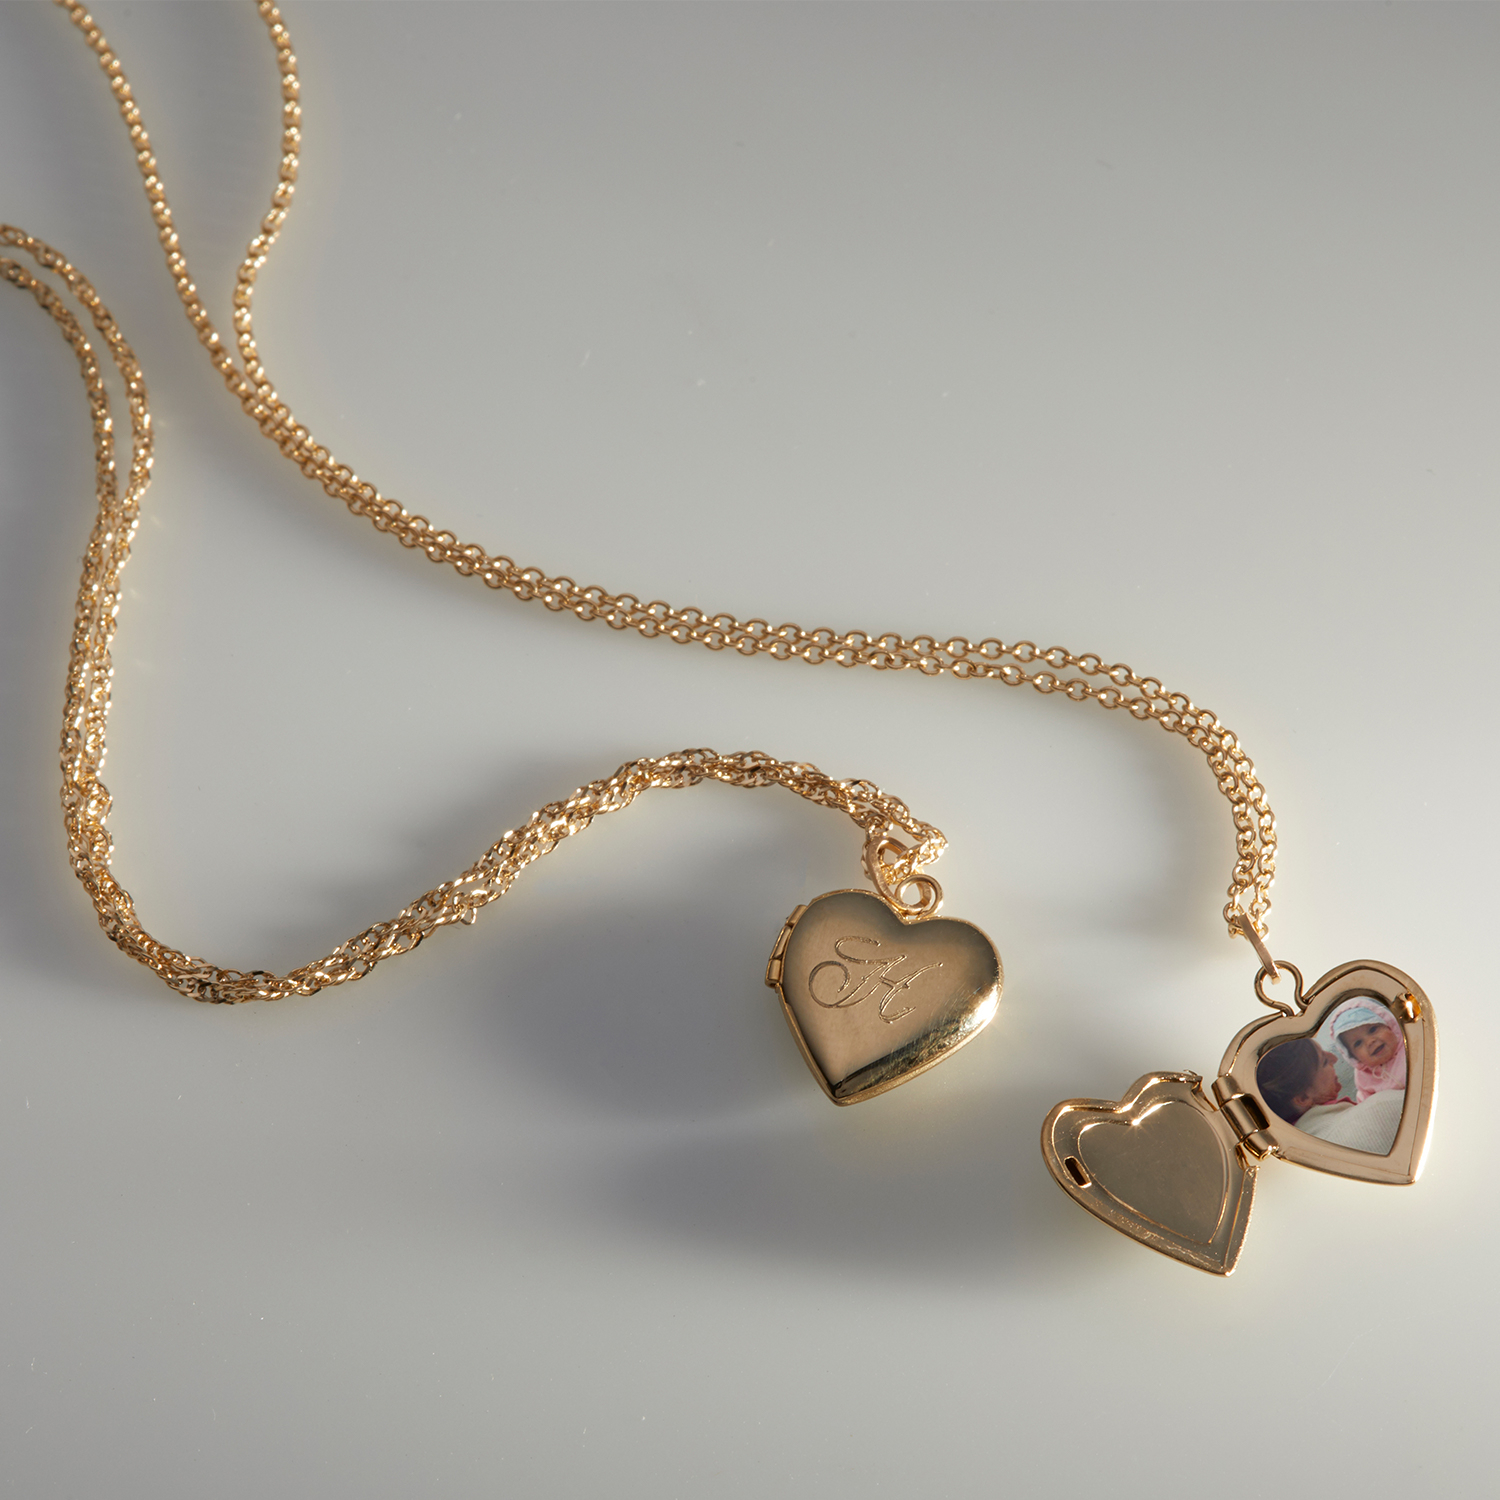 Dollhouse Heart Locket, Gold With Regard To Best And Newest Heart Padlock Locket Element Necklaces (Gallery 20 of 25)